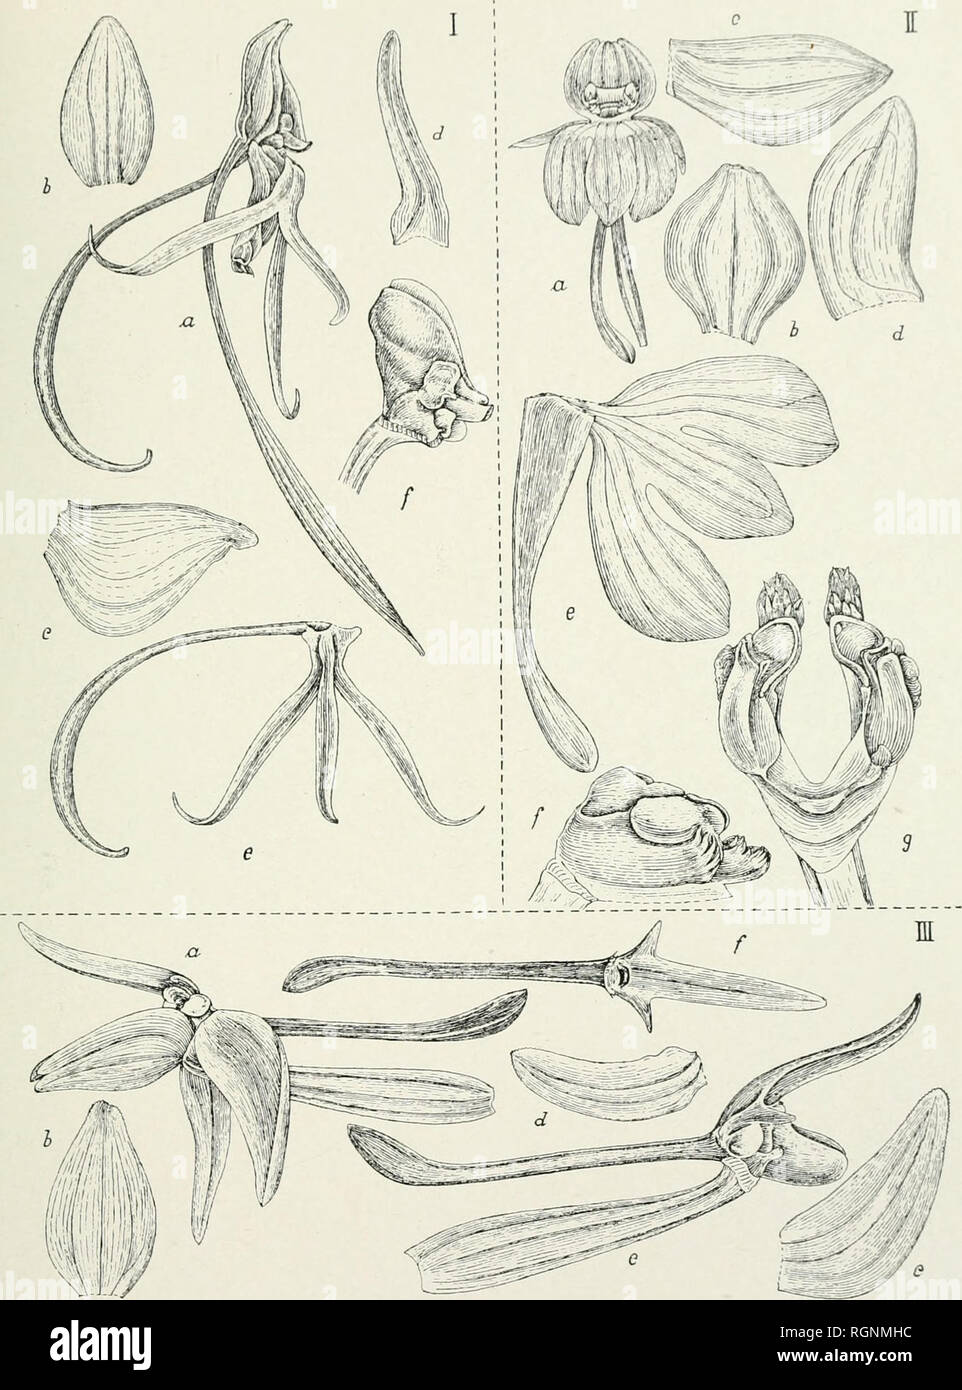 . Bulletin du Jardin botanique de Buitenzorg. Plants -- Indonesia; Plants. Bui-L. JARD. Bot. Buitenzorg, Série III, Vol. V. j. J. Smith: Tafeln javanische Orchidtcn. Tab. 20.. J. J. Smith, del.. Please note that these images are extracted from scanned page images that may have been digitally enhanced for readability - coloration and appearance of these illustrations may not perfectly resemble the original work.. Kebun Raya Indonesia. Buitenzorg : Db 's Lands Plantentuin - Stock Image